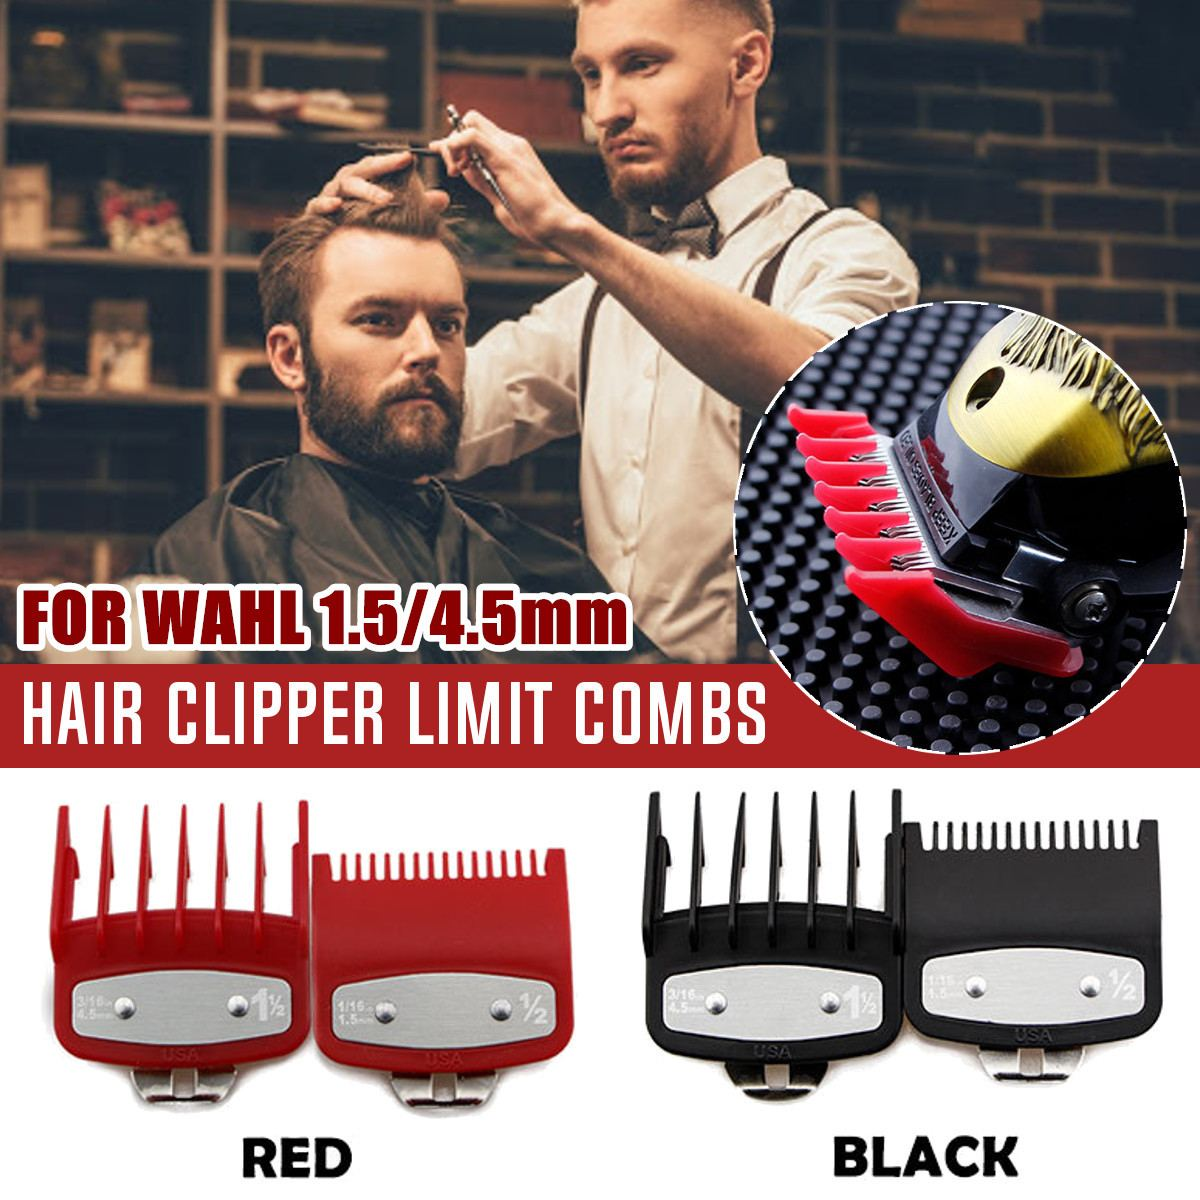 2Pcs Guide Comb Multiple Sizes Metal Limited Combs Hair Clipper Cutting Tool High Quality And Brand New For WAHL Machine